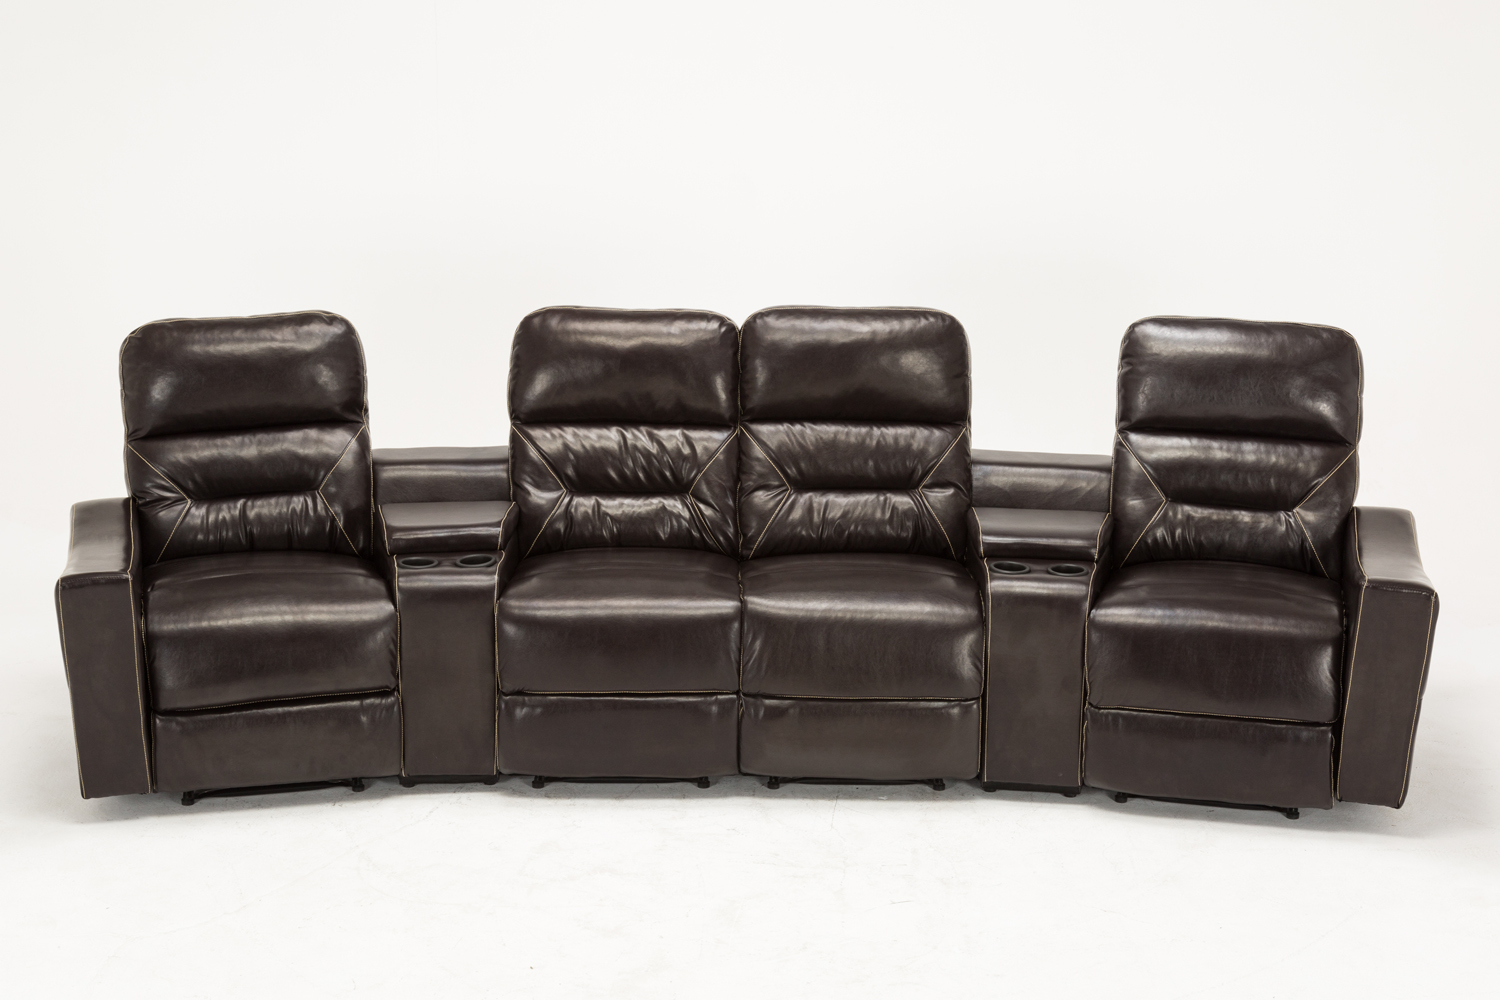 Mcombo home theater leather 4 set recliner media sofa w cup holder 7095 brown ebay Loveseat with cup holders